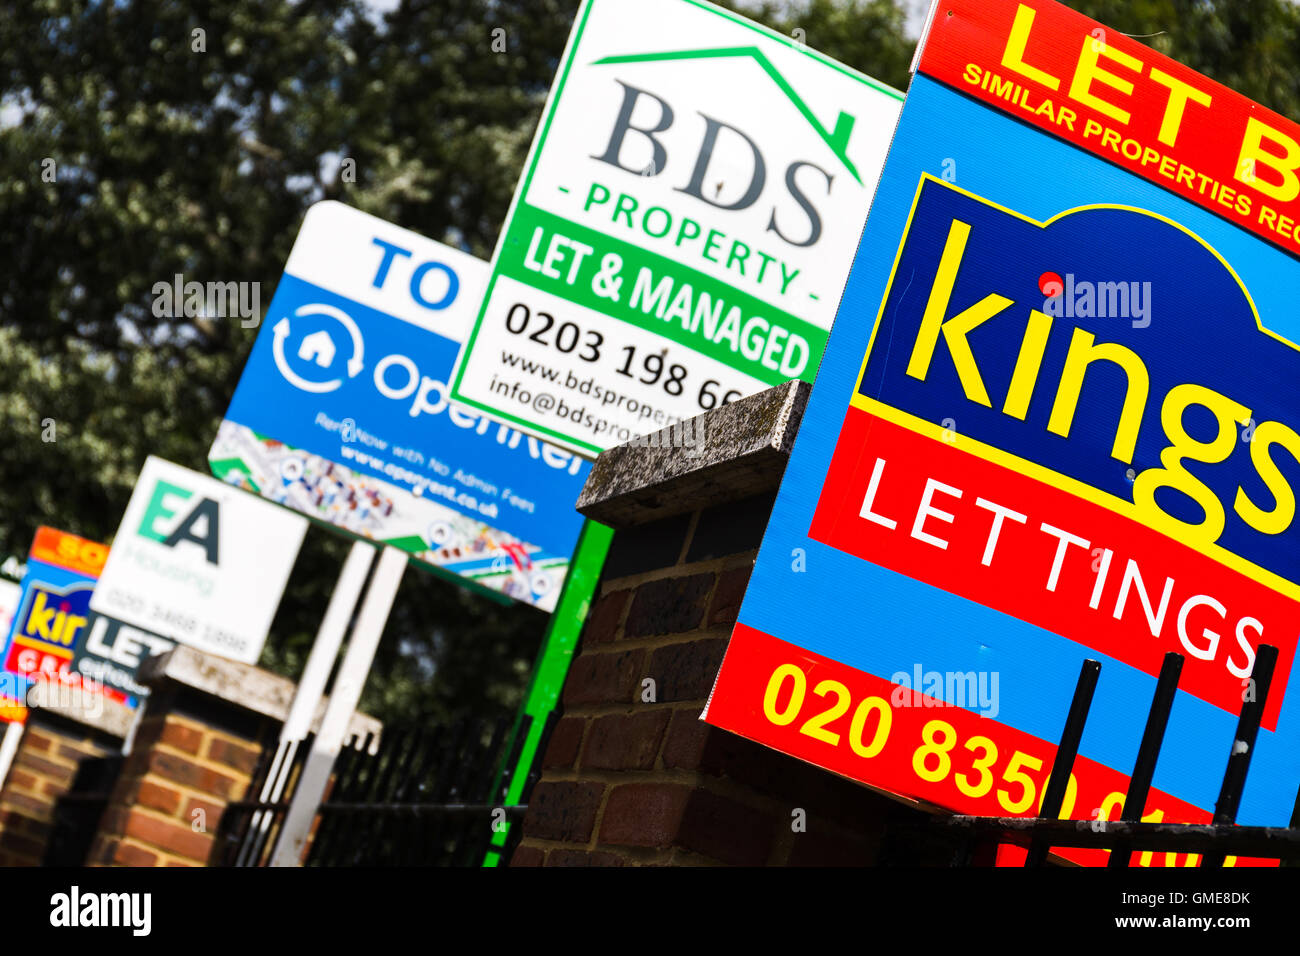 Houses to let signs London England UK - Stock Image